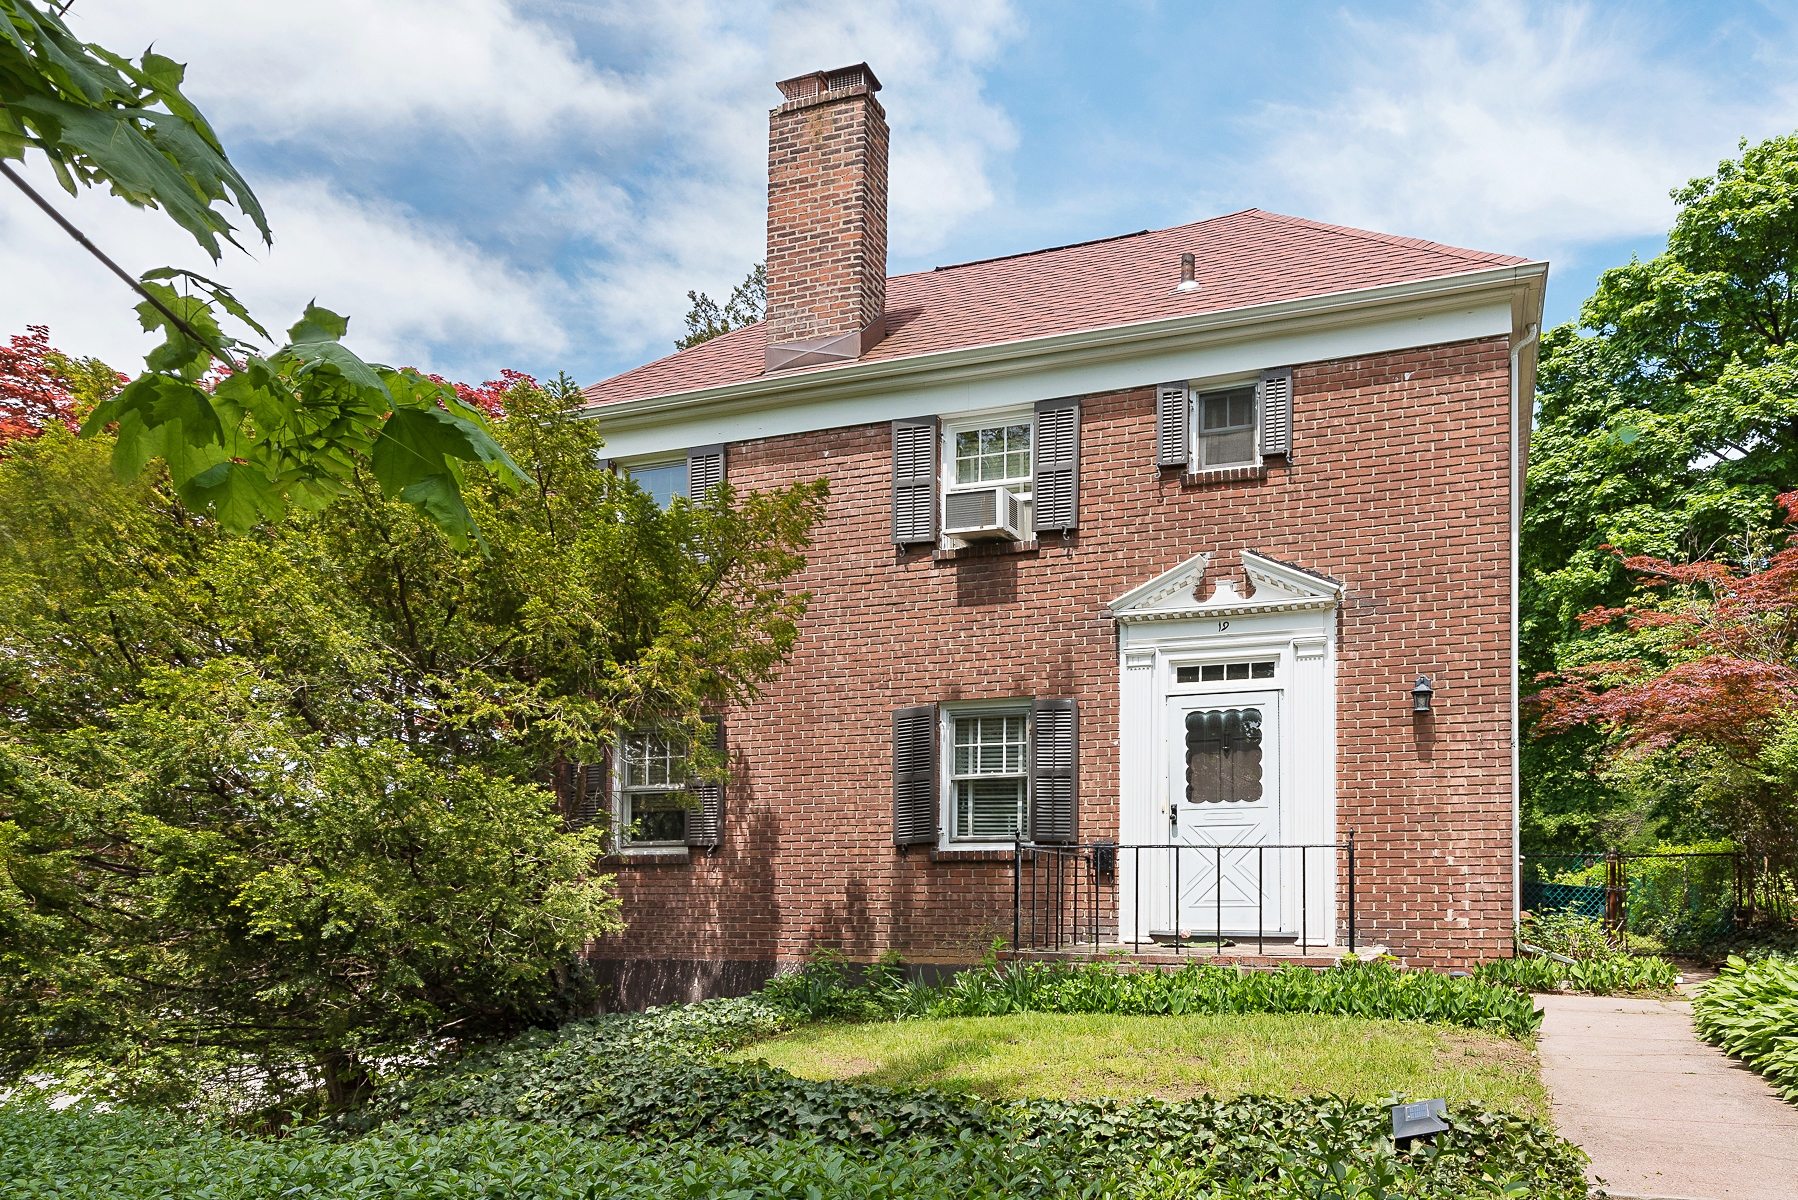 Casa Unifamiliar por un Venta en Detached Brick Colonial 19 Ellsworth Avenue Riverdale, Nueva York, 10471 Estados Unidos